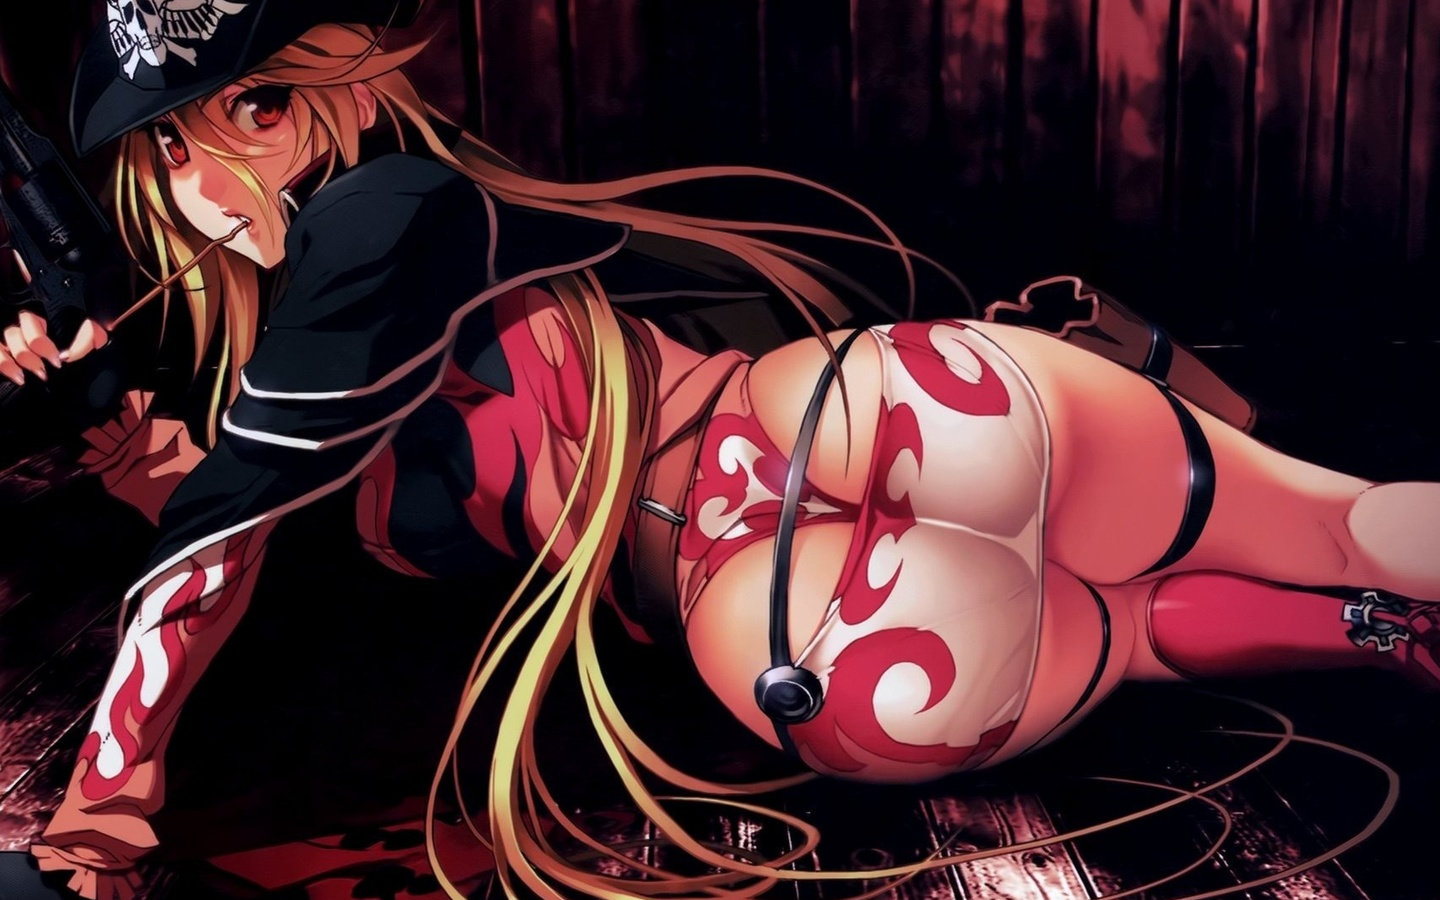 Anime vampire and the rose porn video erotic pics